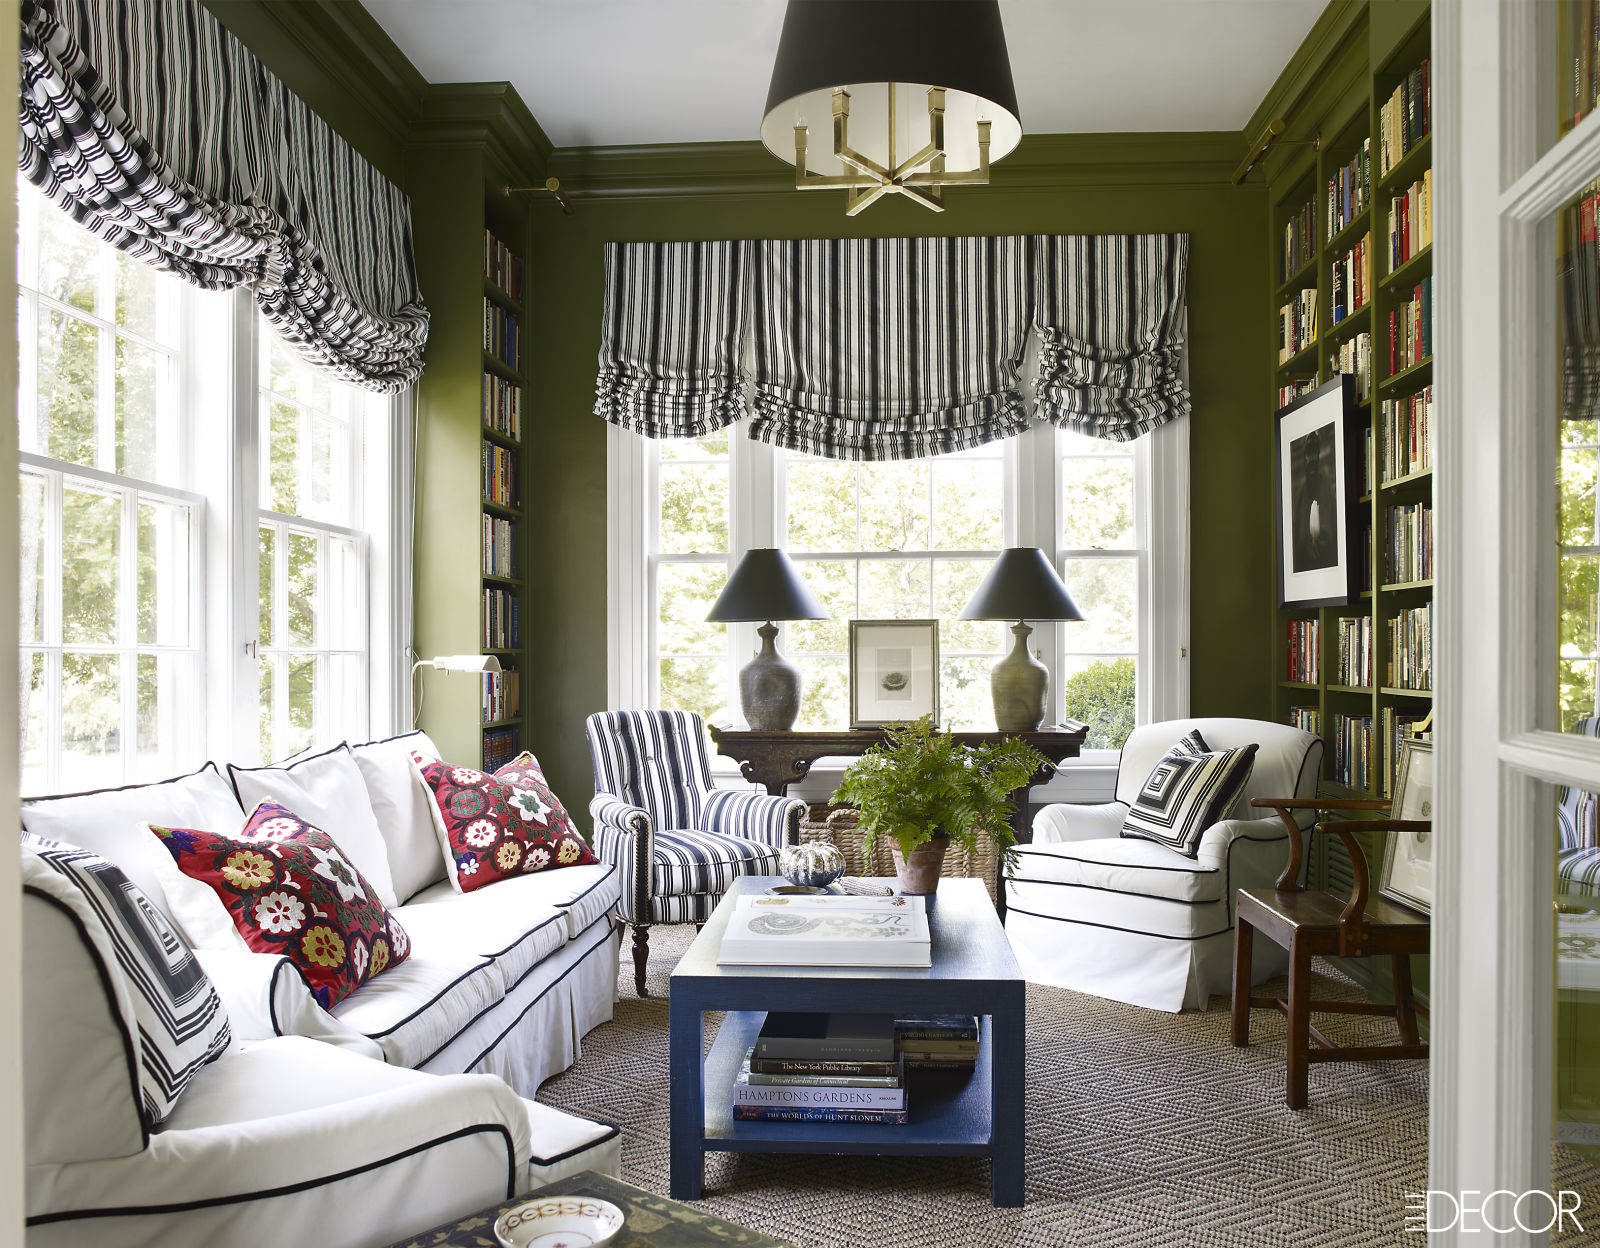 20 olive green paint color decor ideas olive green for Olive green dining room ideas